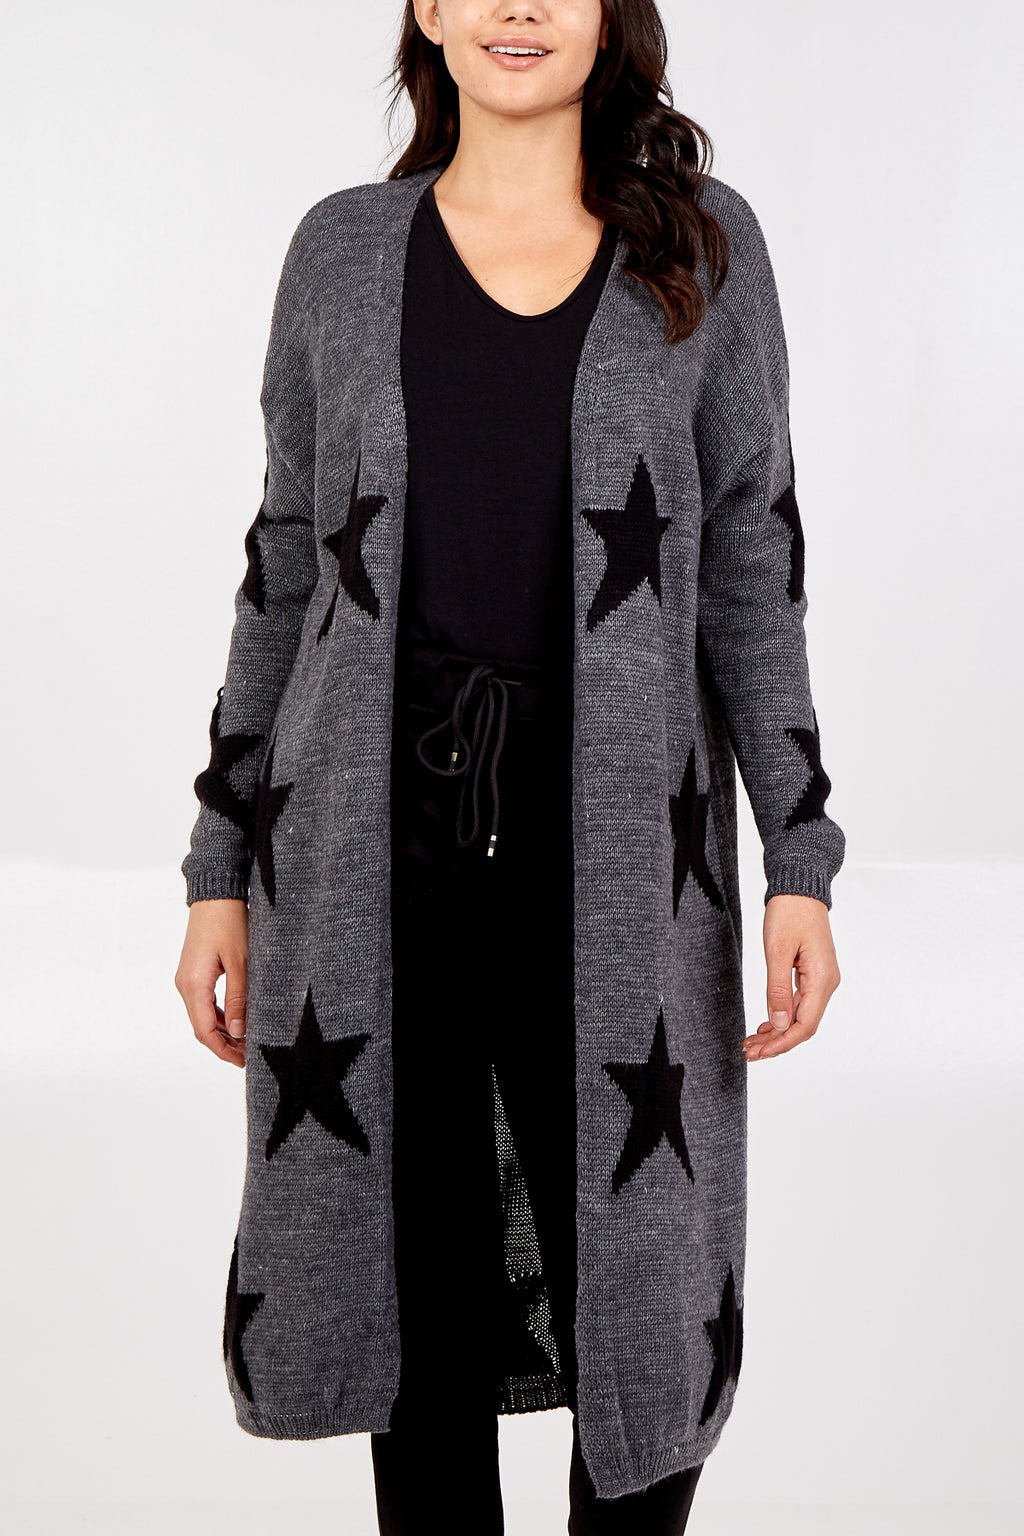 Edge To Edge Star Knitted Cardigan